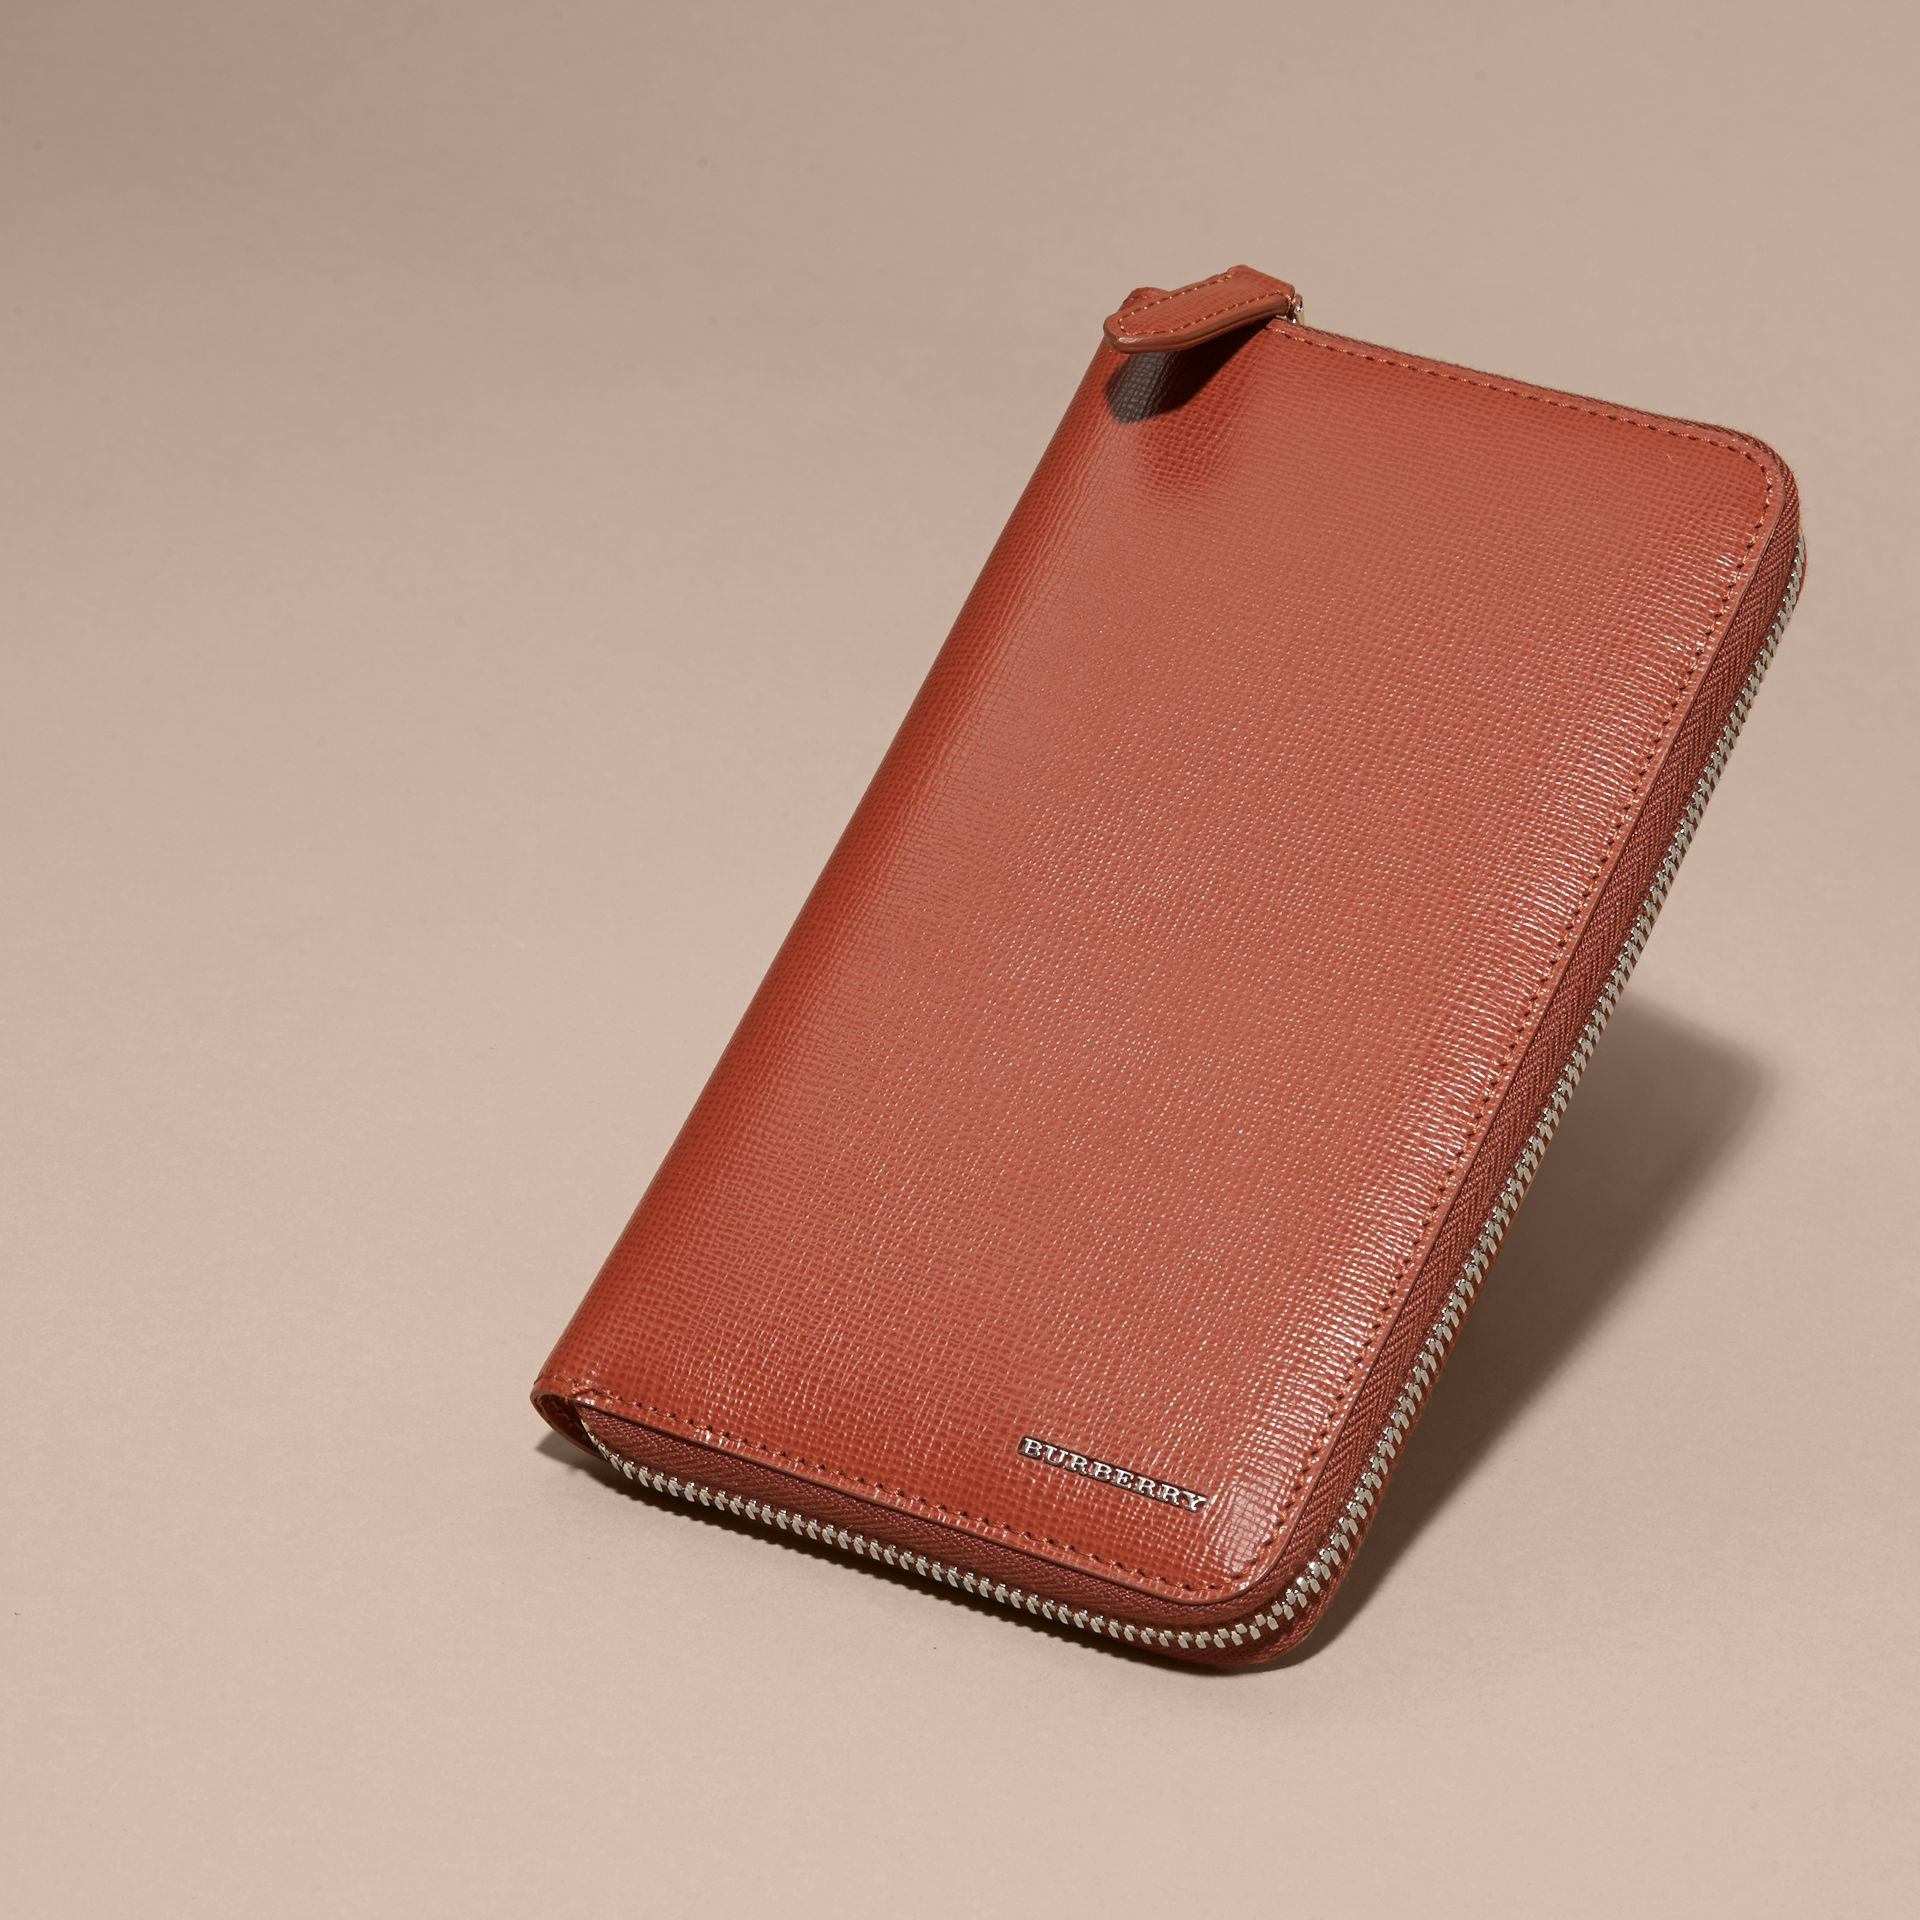 Burnt sienna London Leather Ziparound Wallet Burnt Sienna - gallery image 5